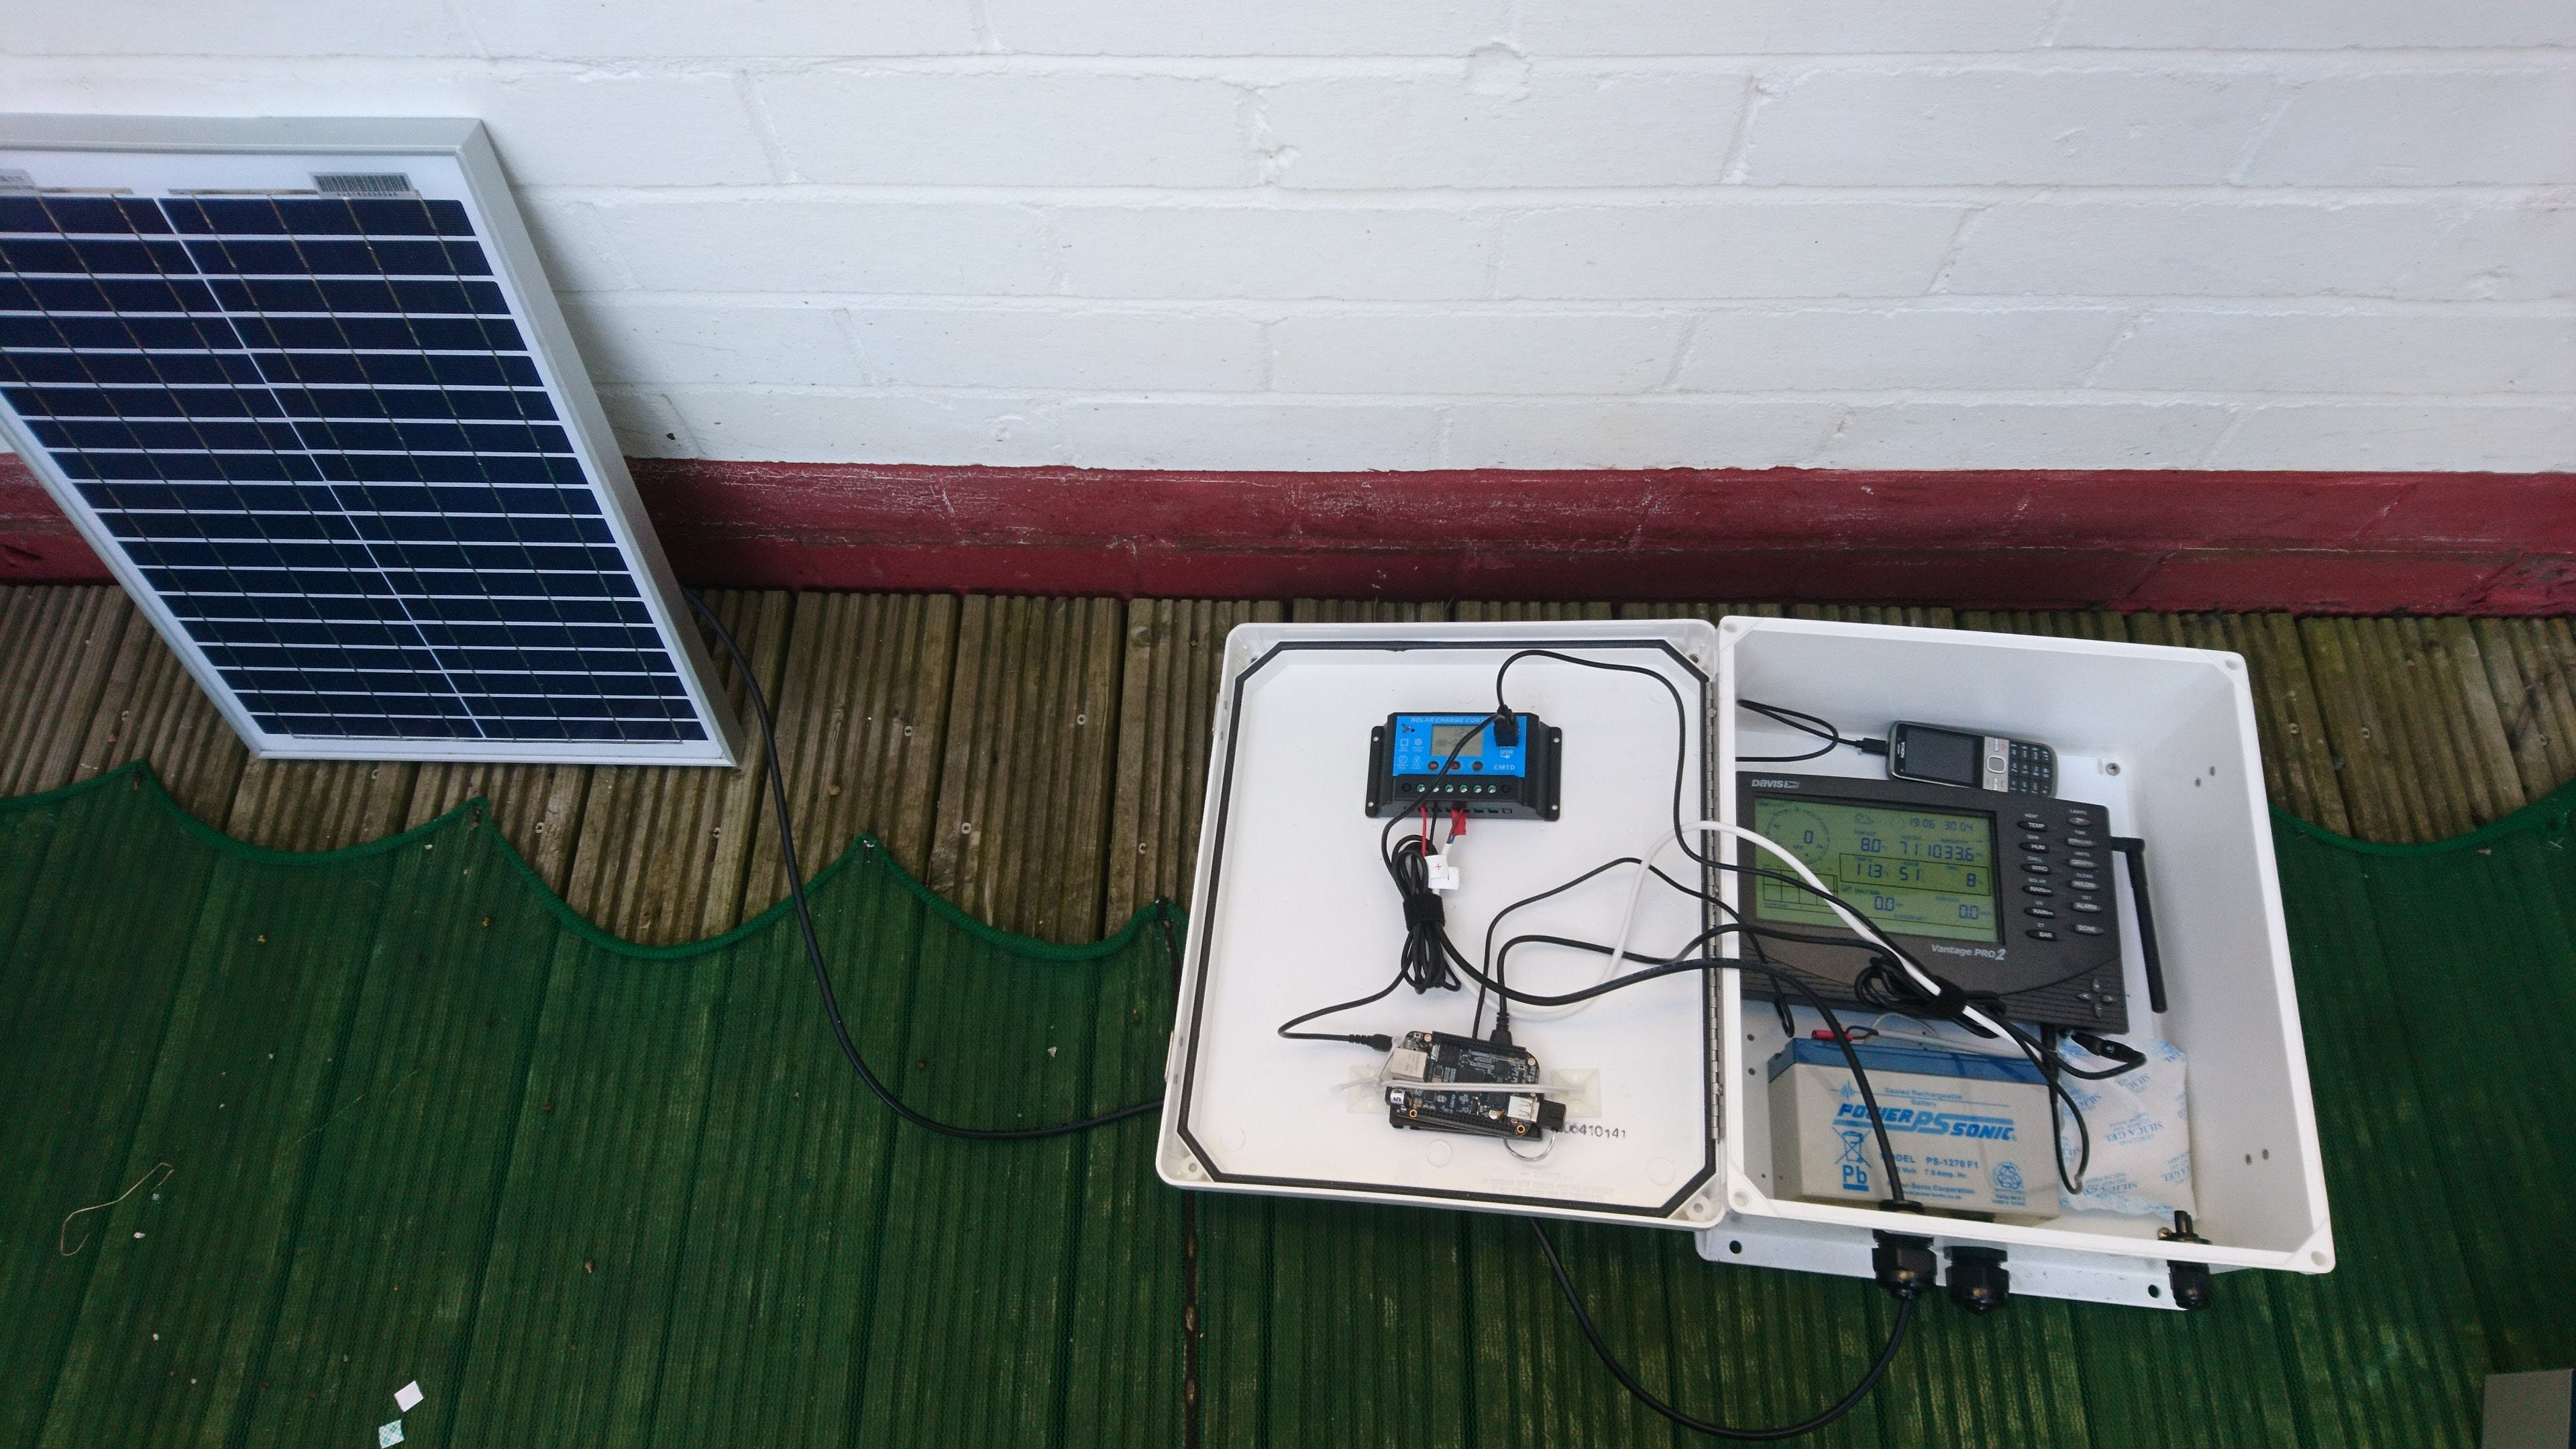 Weather station internals (with Nokia phone as modem)